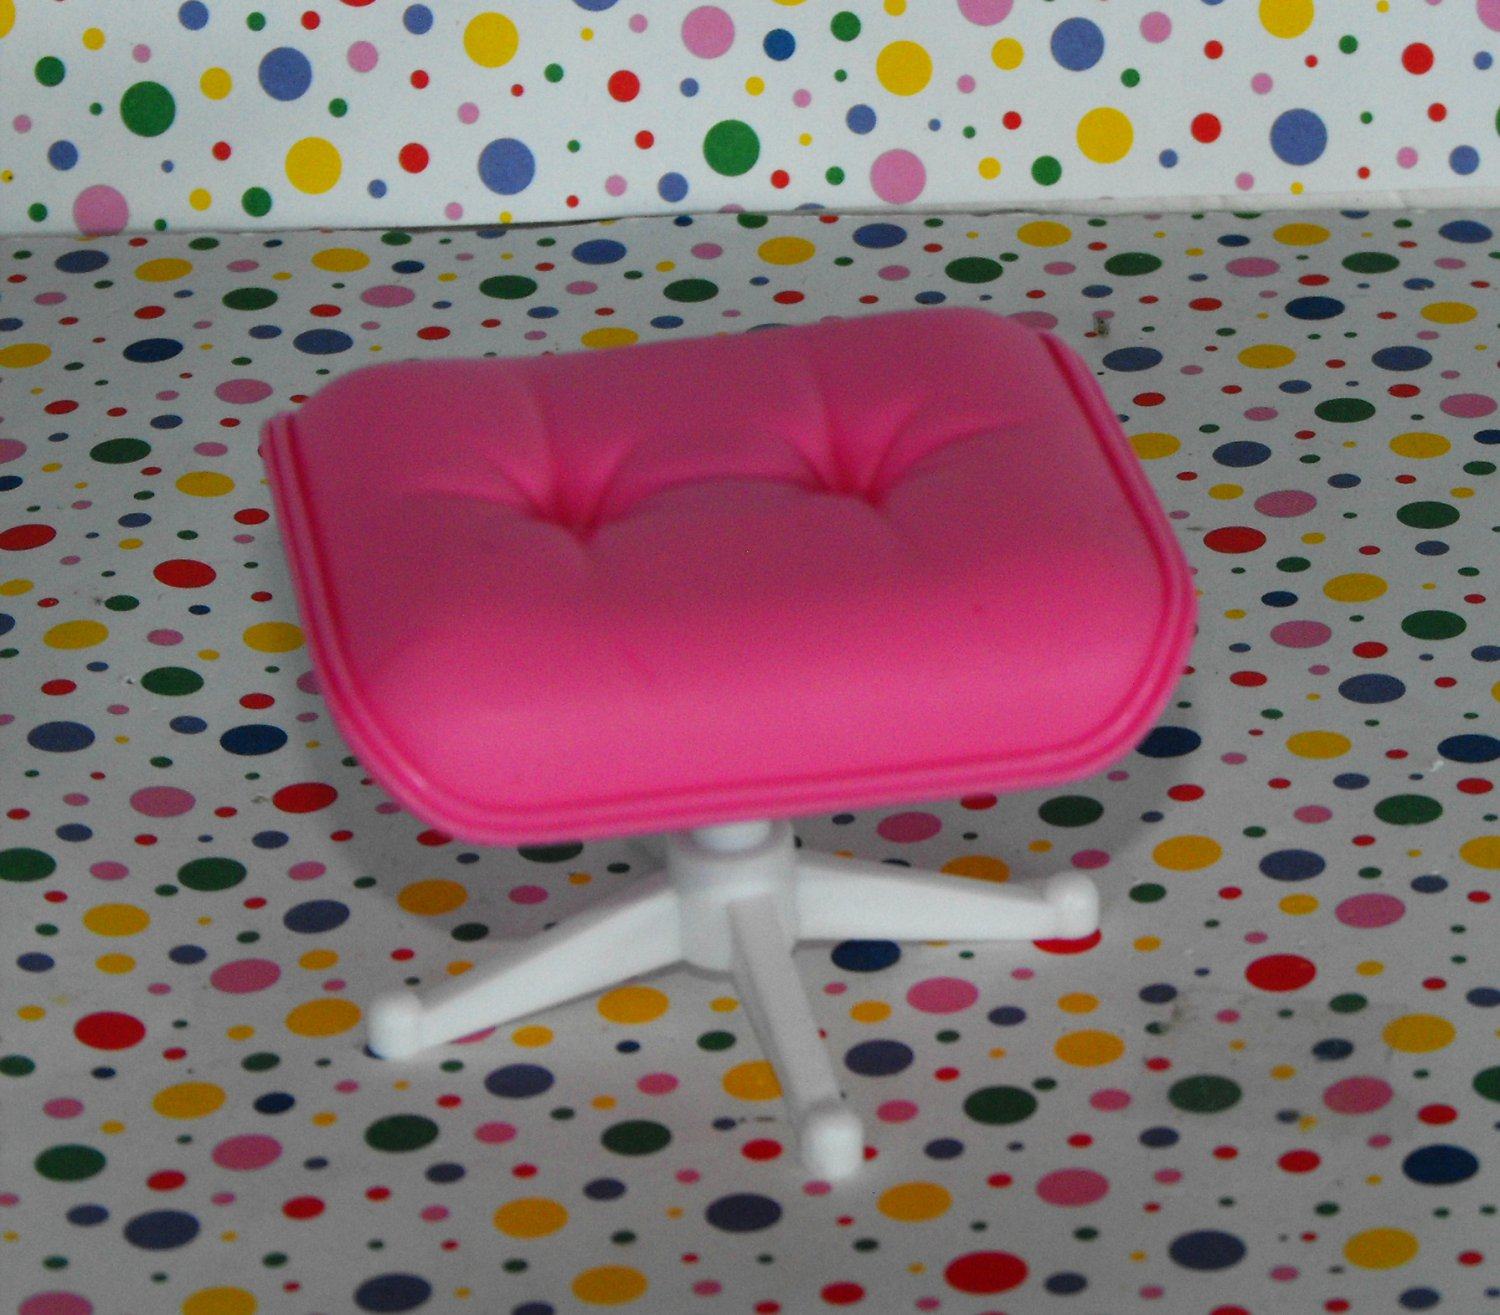 Barbie Light Up Family Room Dollhouse Pink Foot Stool Doll House Furniture